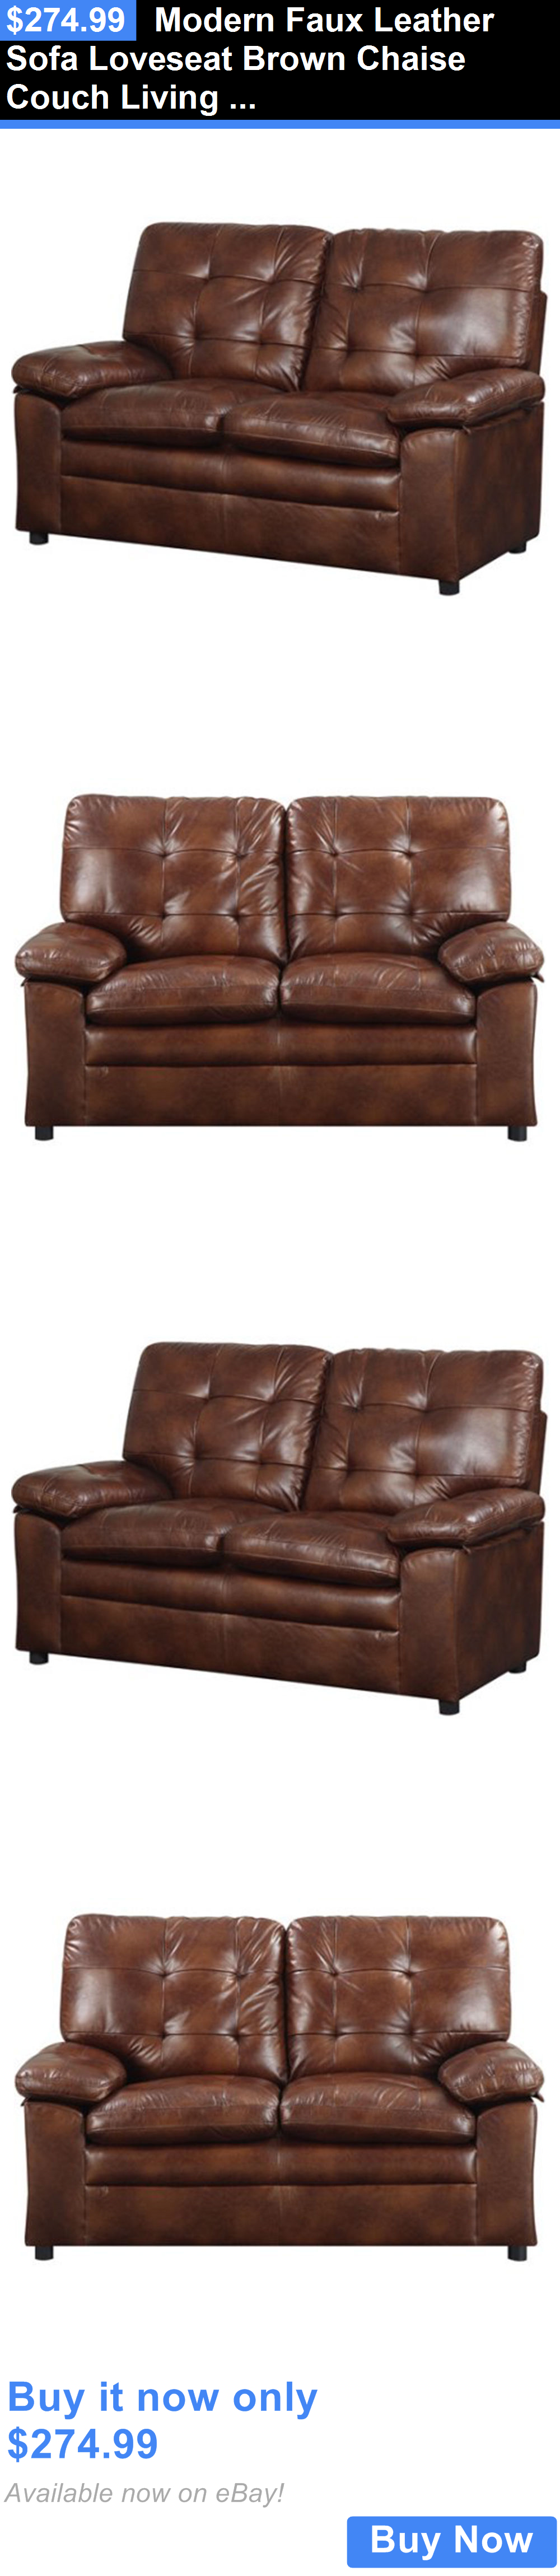 furniture Modern Faux Leather Sofa Loveseat Brown Chaise Couch